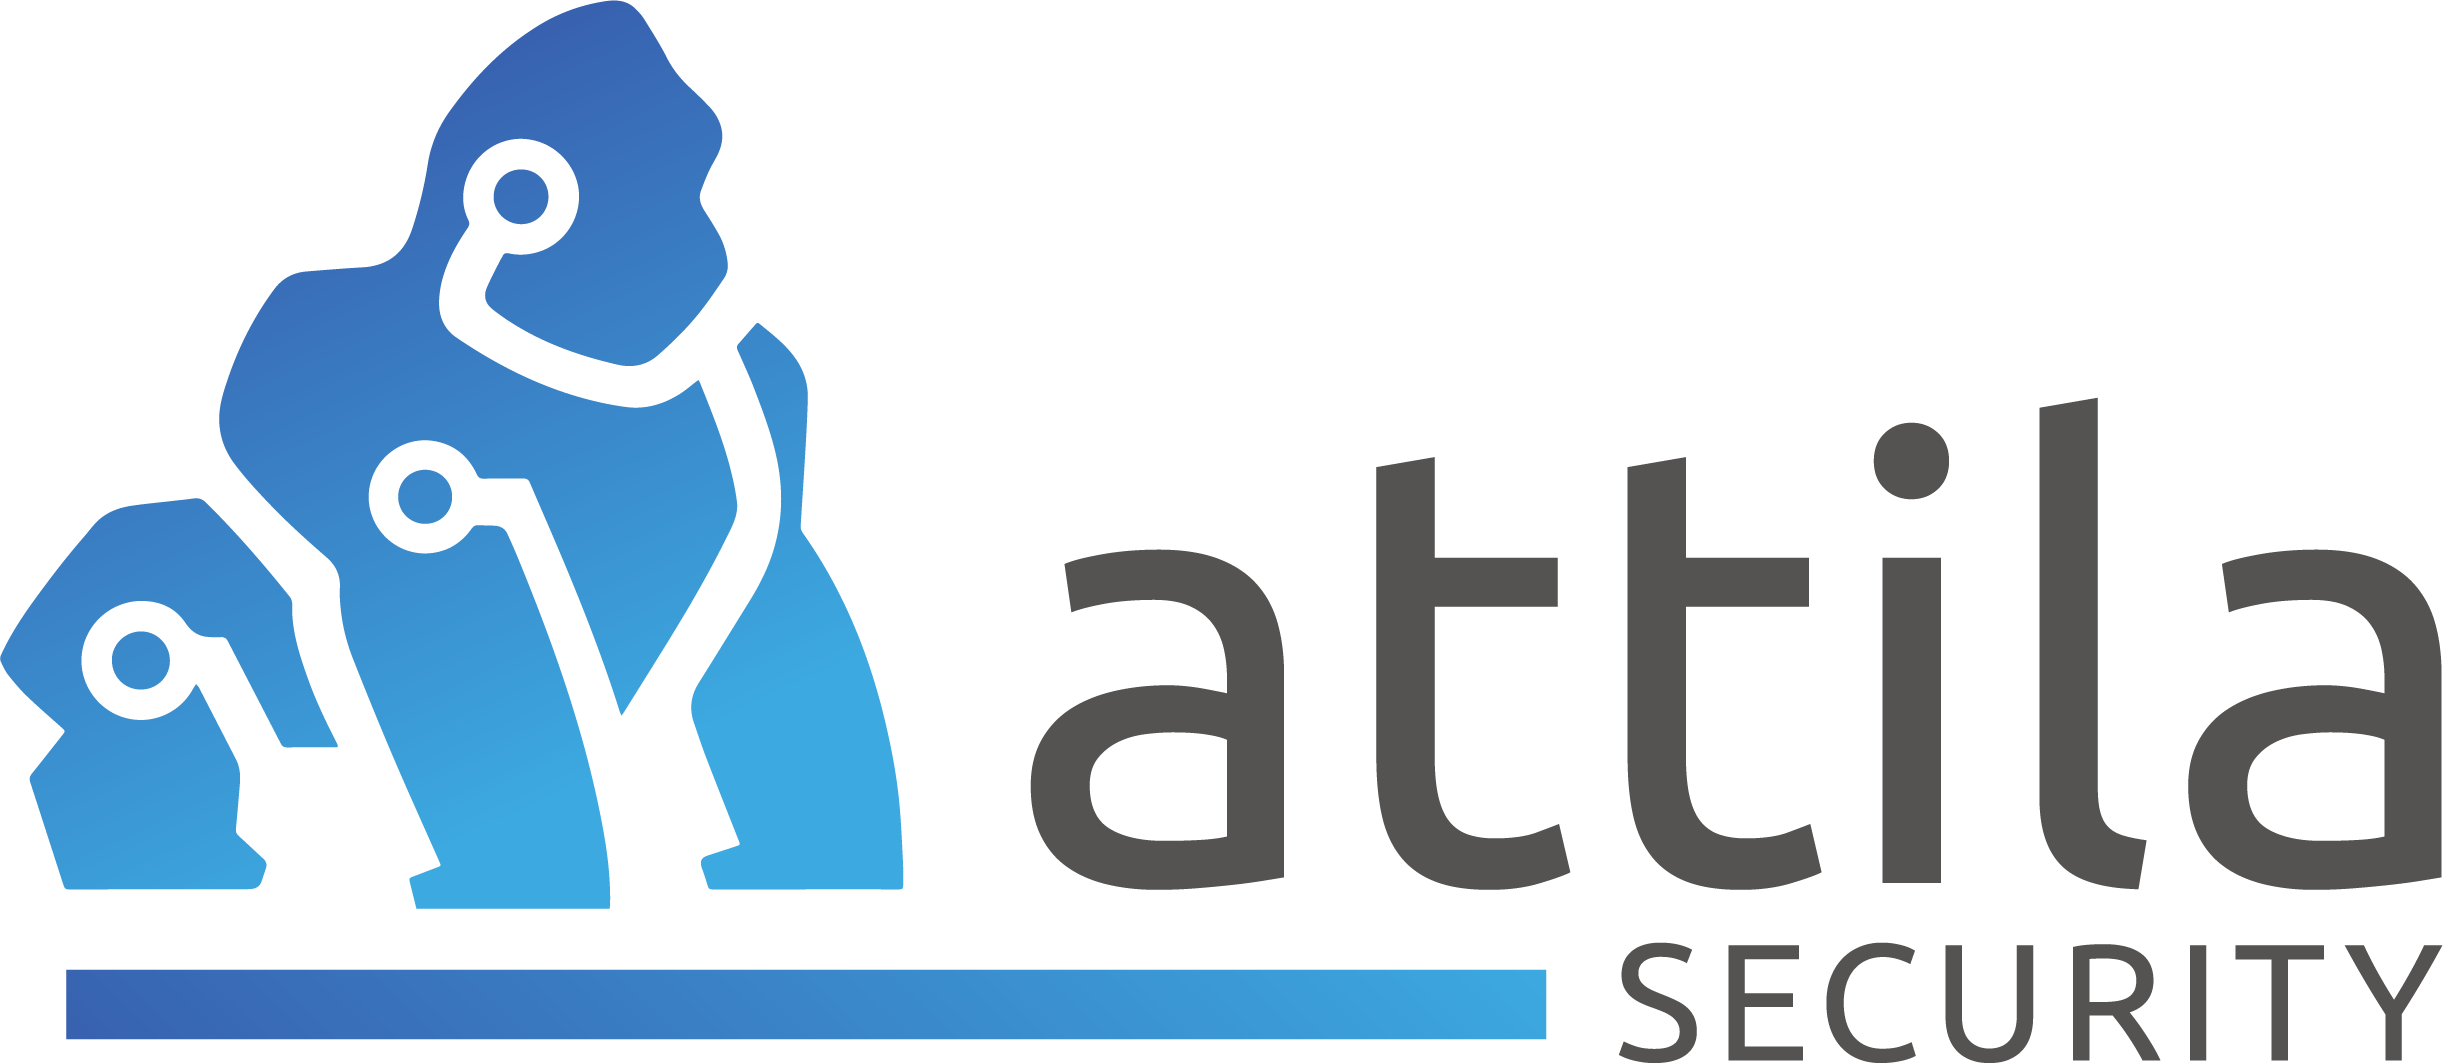 Attila Security Help Center home page